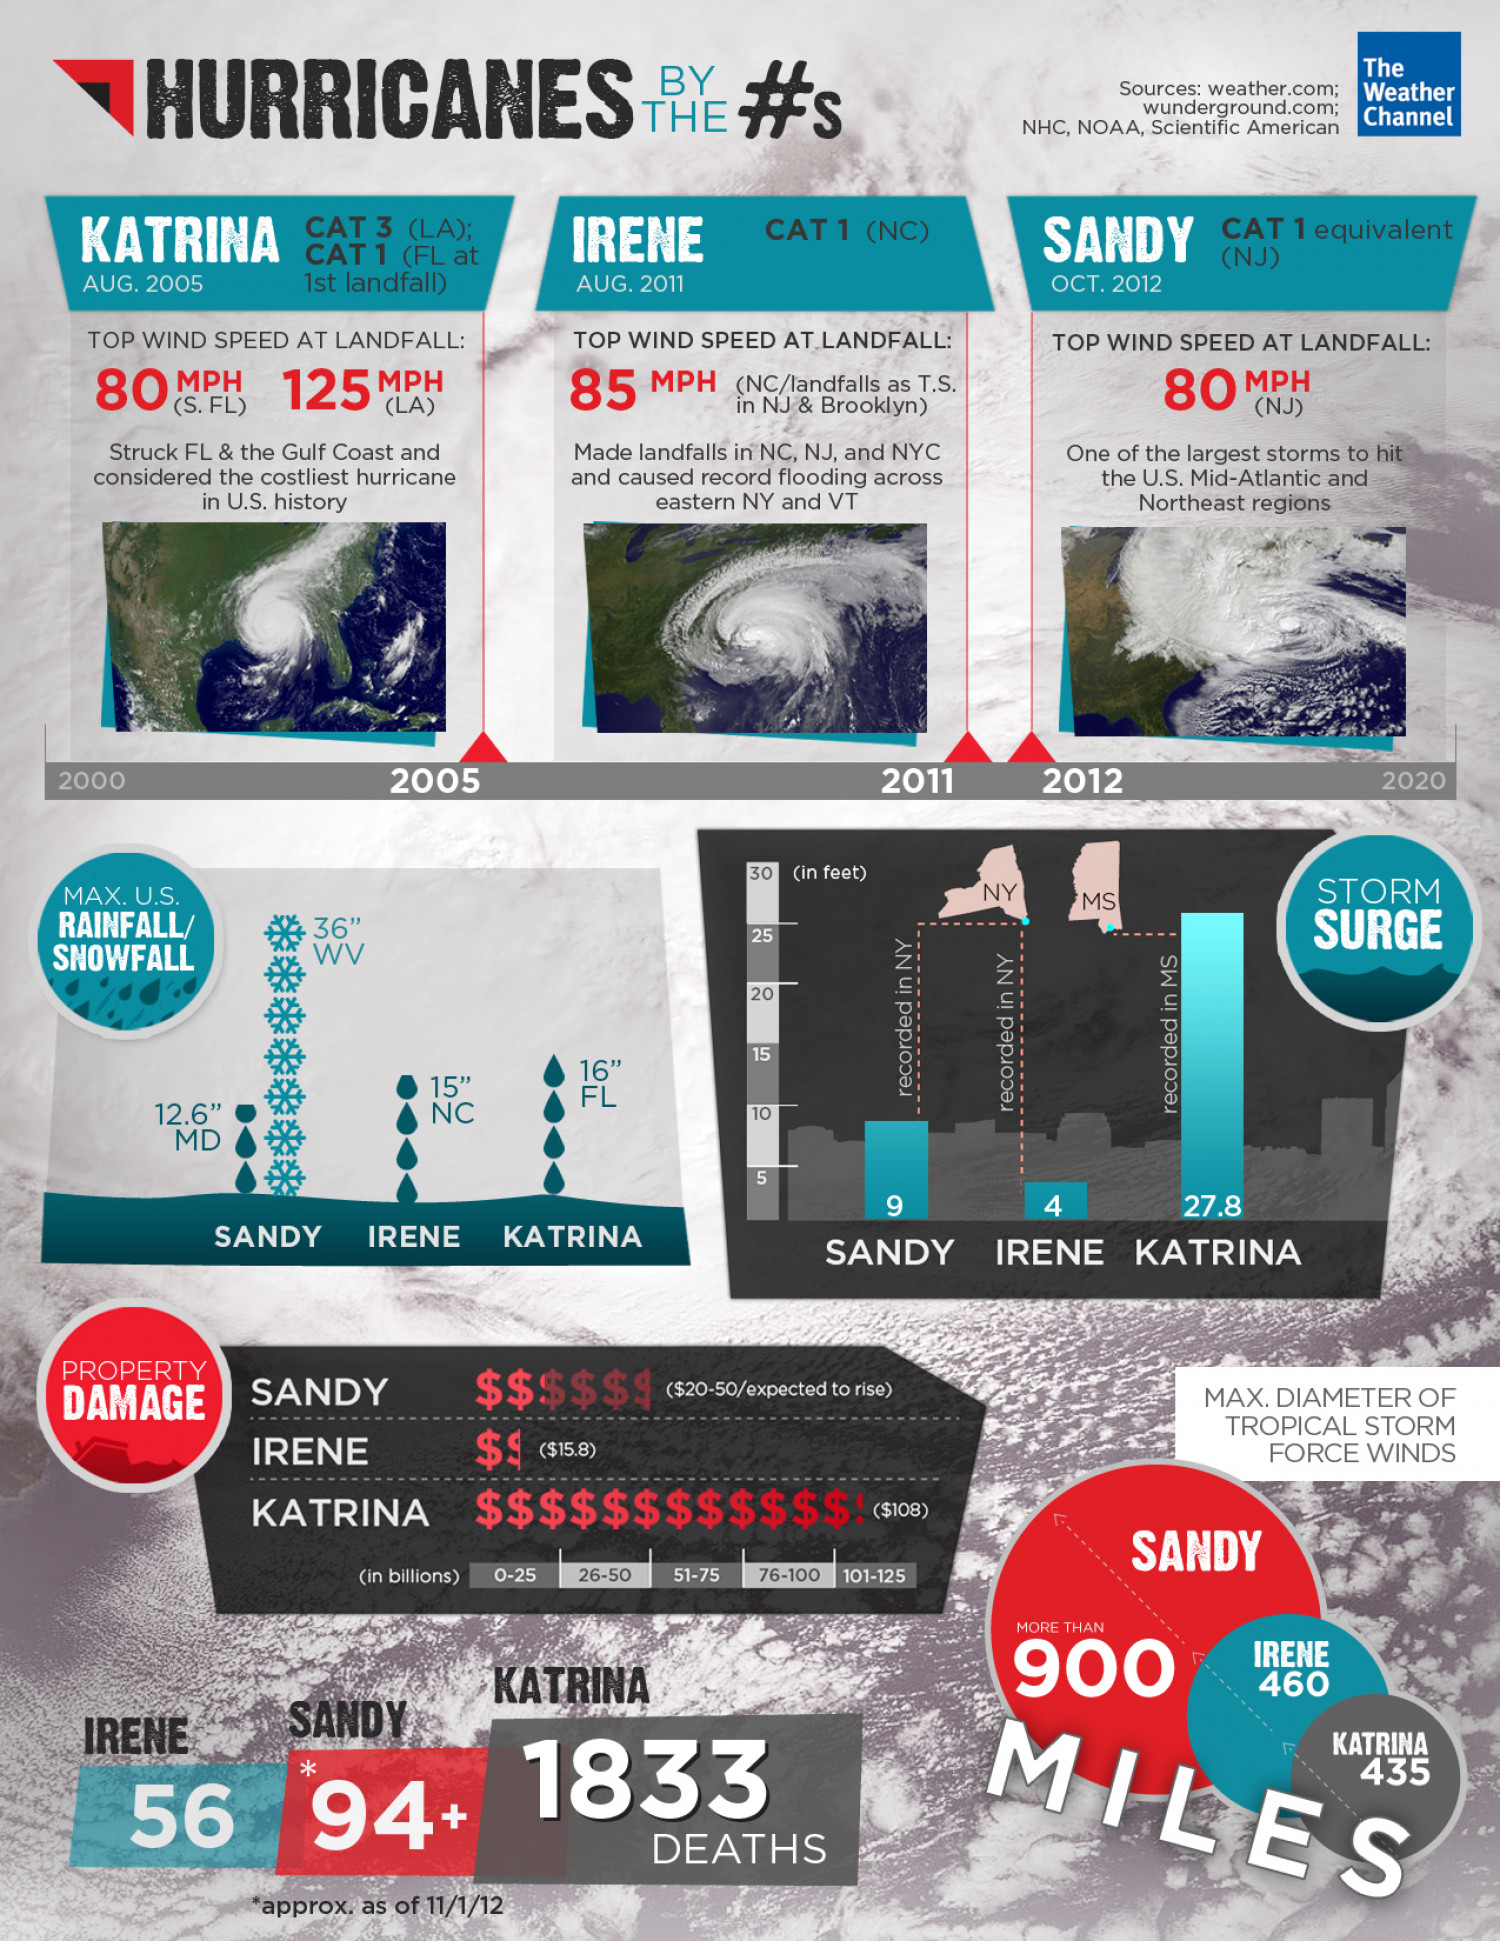 The Weather Channel presents Hurricanes by the Numbers Infographic